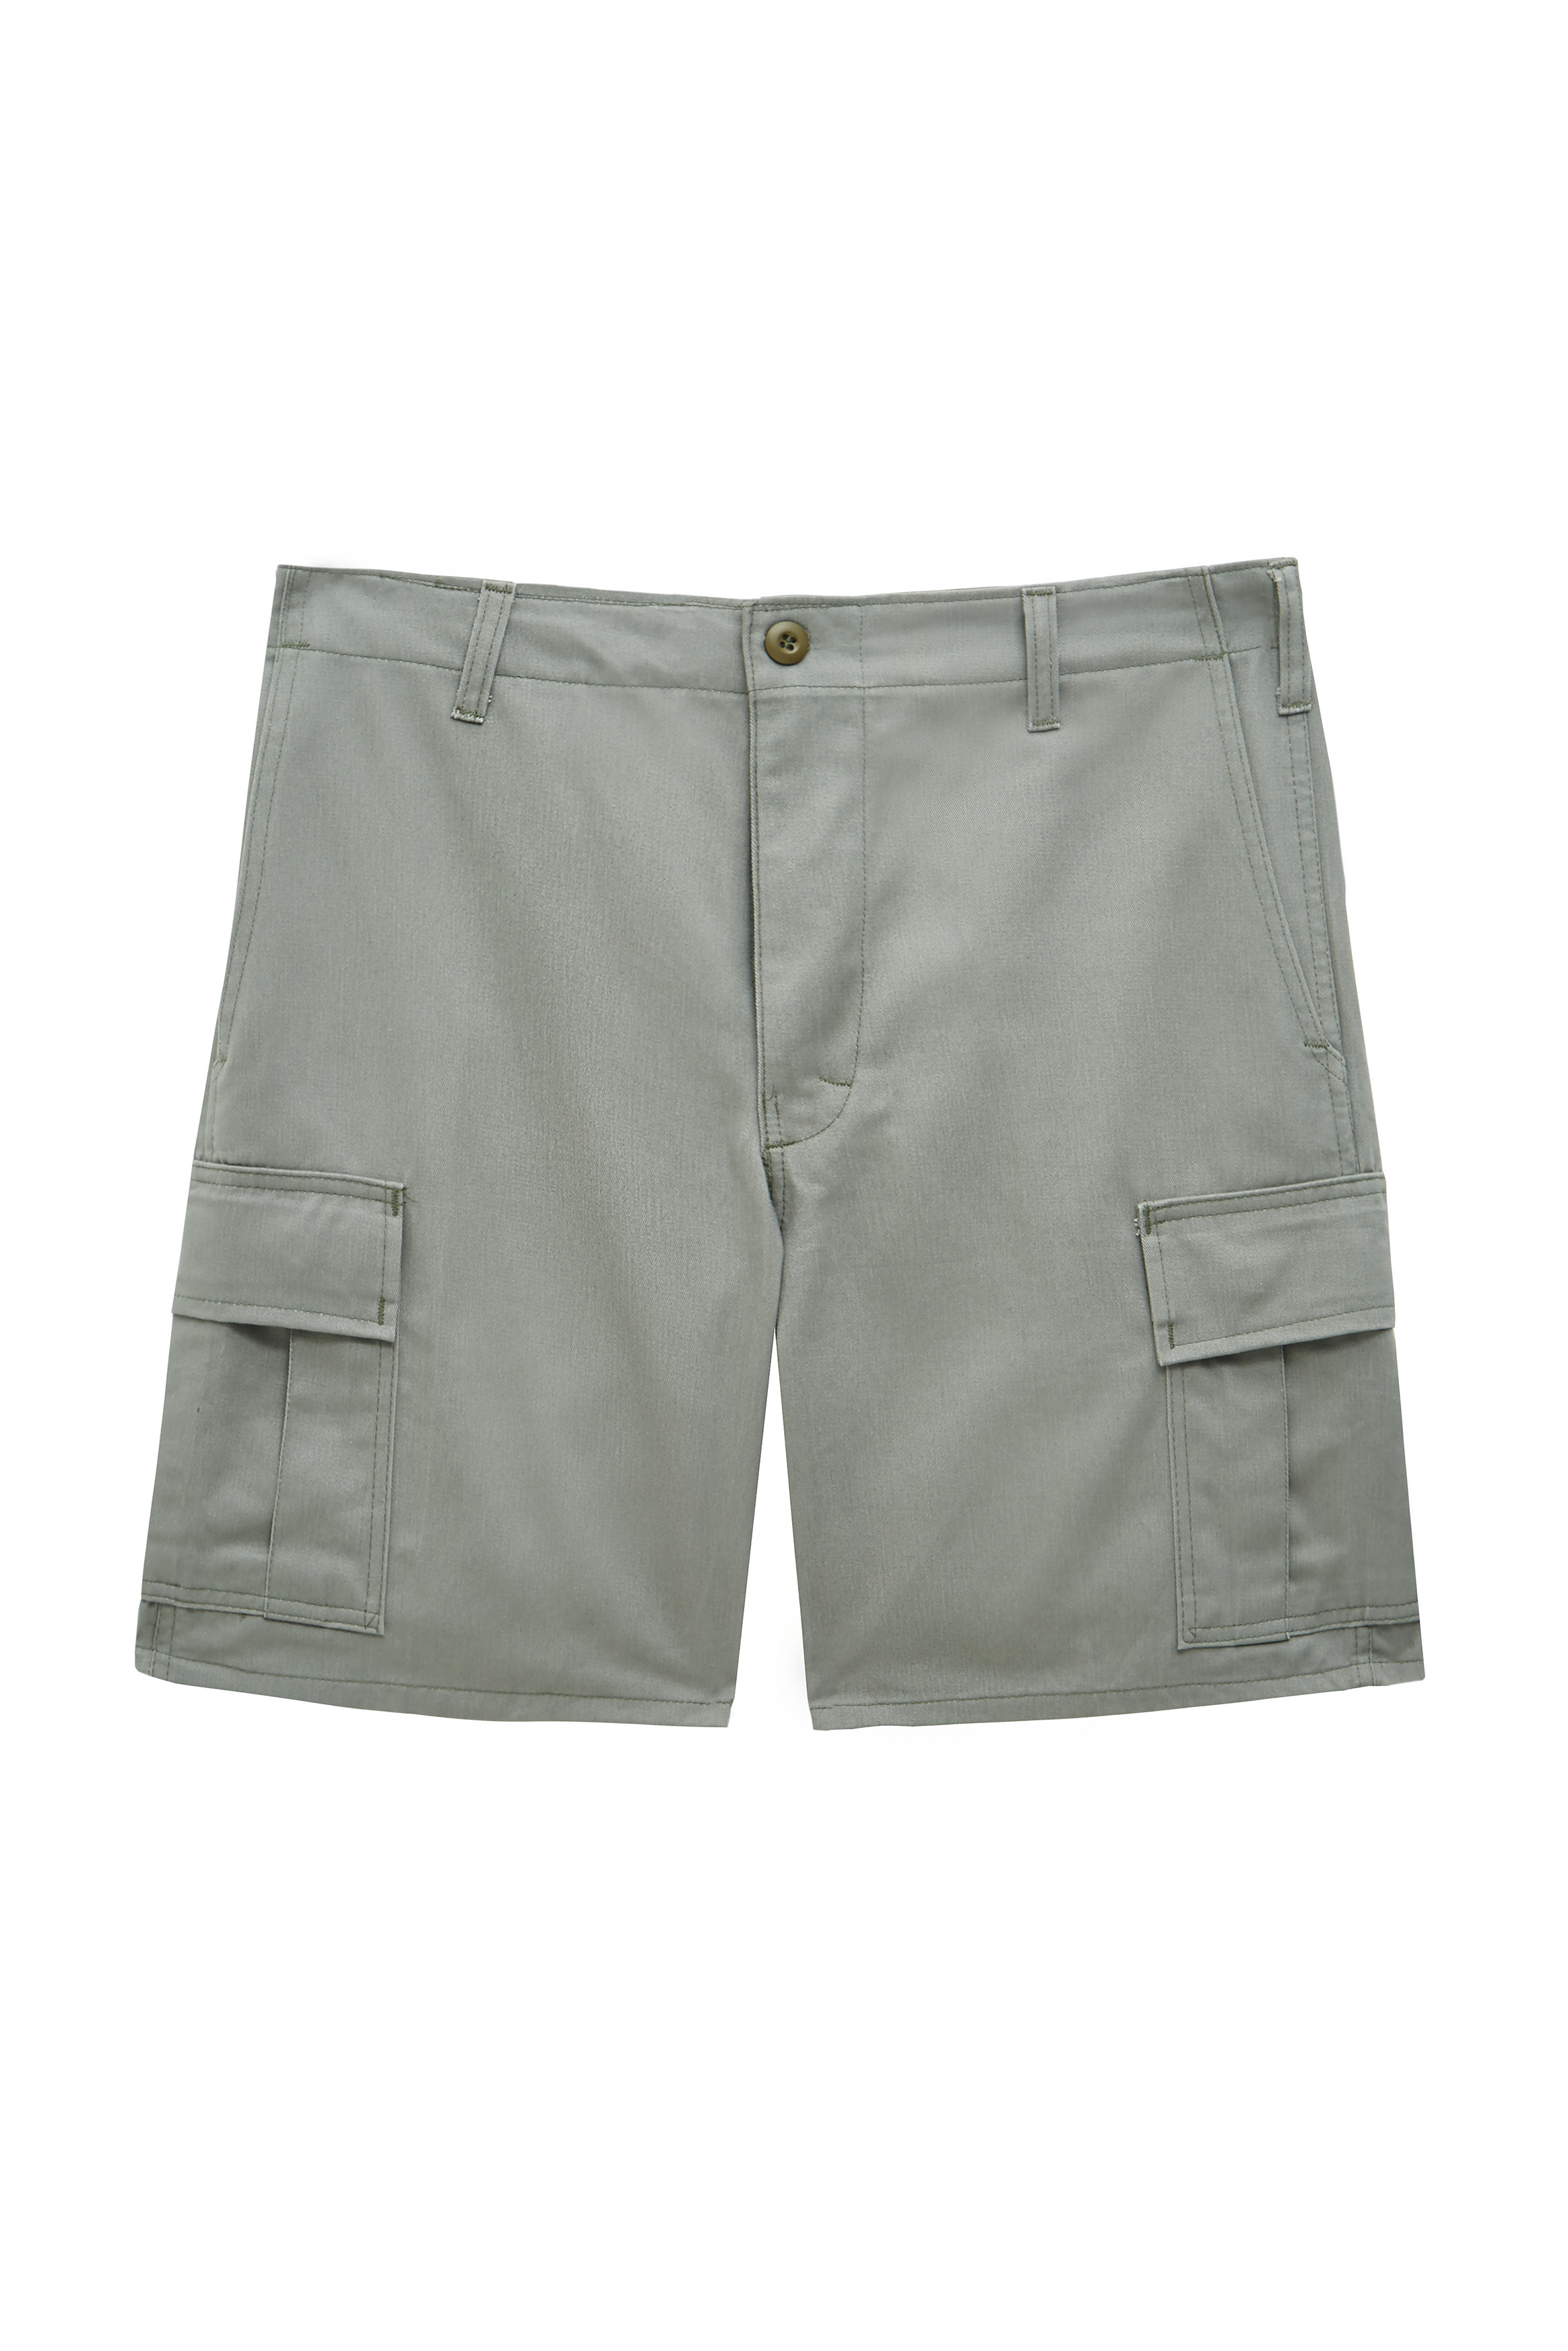 Stan Ray shorts at Urban Outfitters £60 or 85 euros